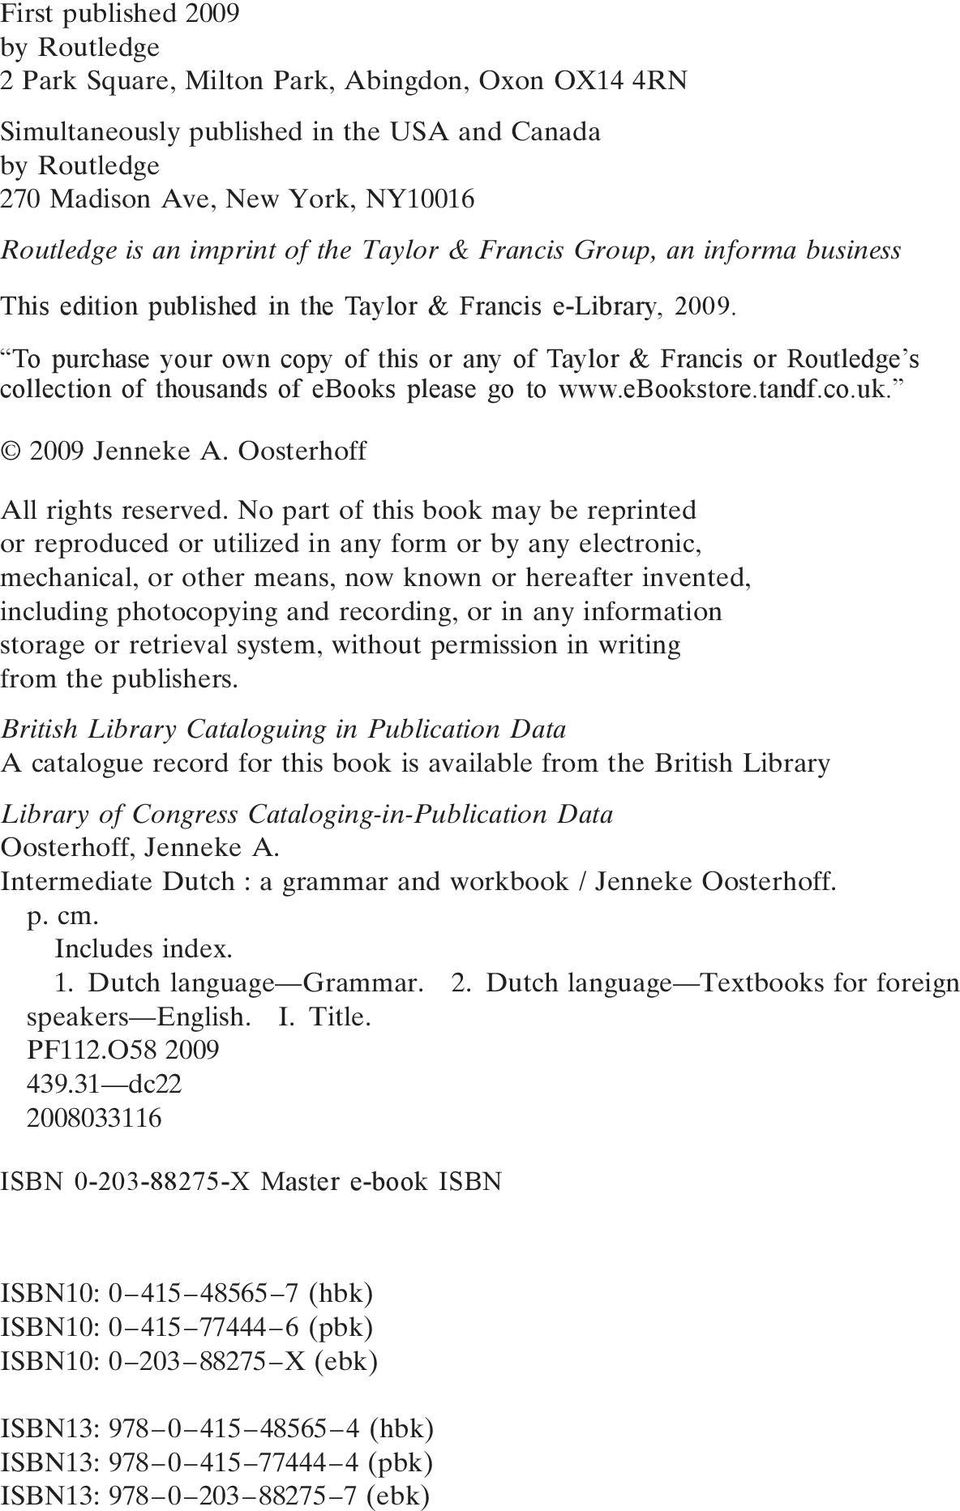 To purchase your own copy of this or any of Taylor & Francis or Routledge s collection of thousands of ebooks please go to www.ebookstore.tandf.co.uk. 2009 Jenneke A. Oosterhoff All rights reserved.